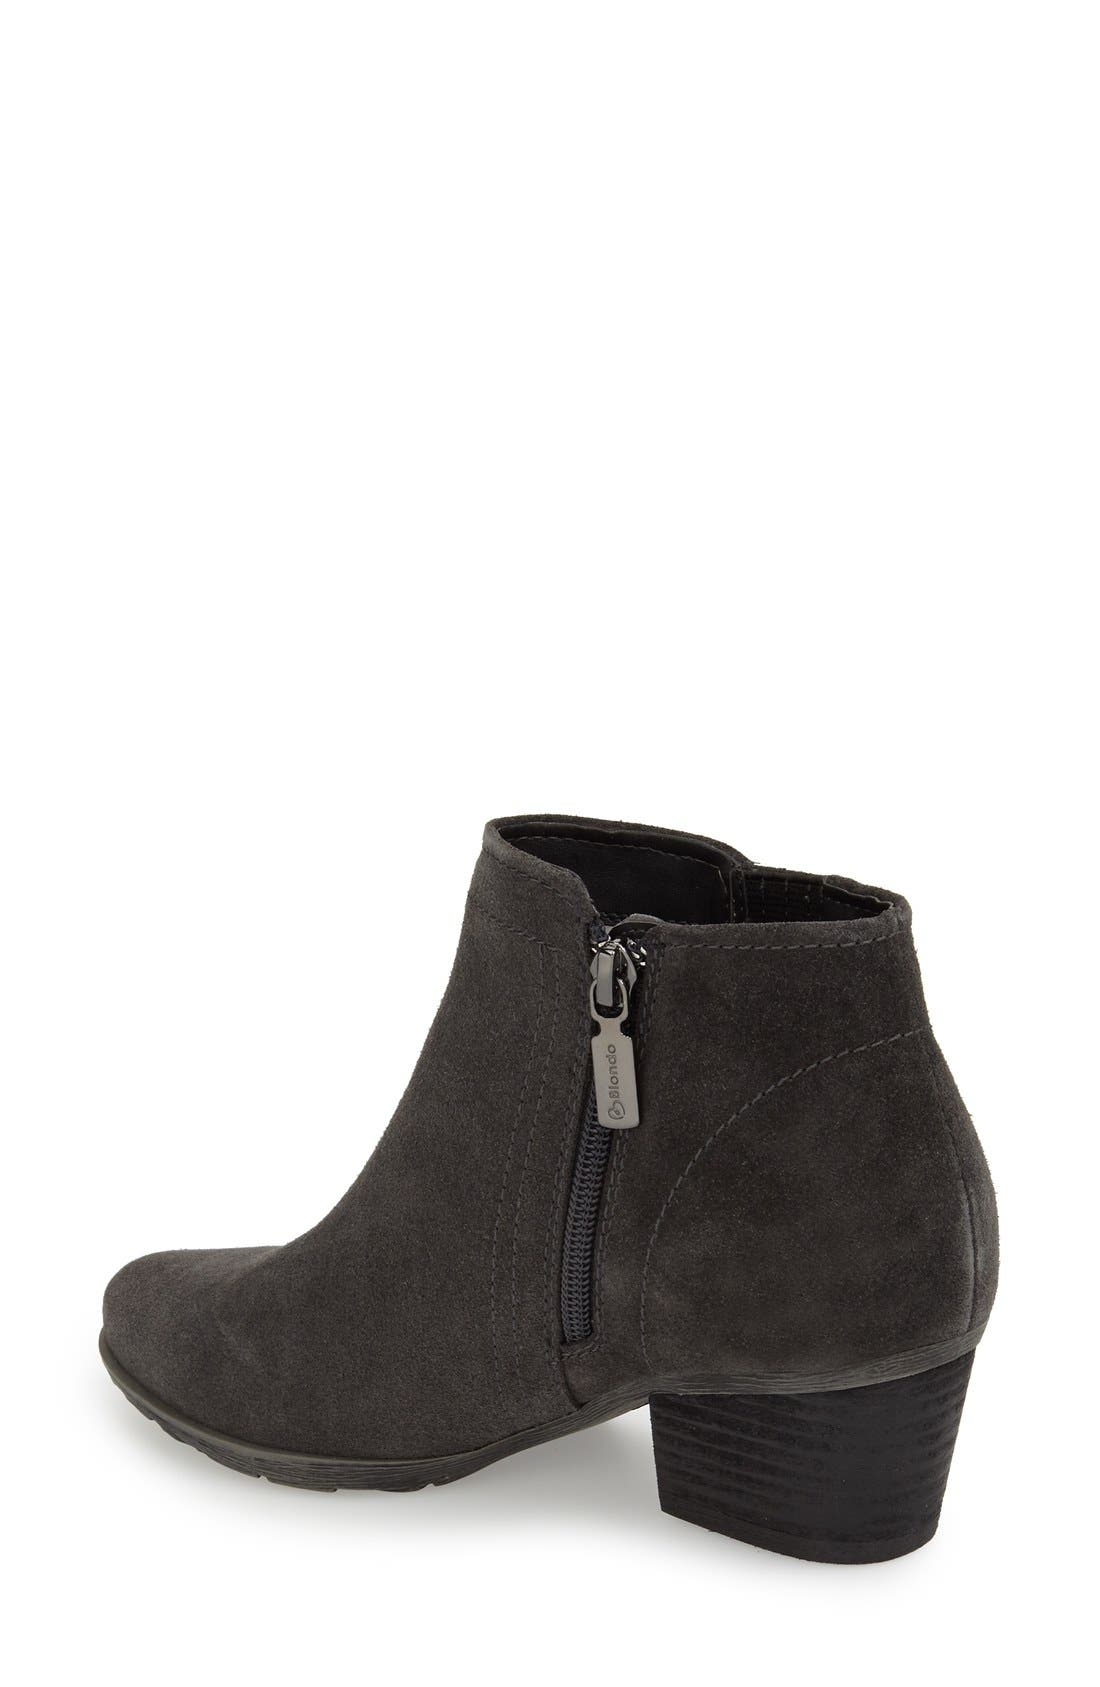 'Valli' Waterproof  Bootie,                             Alternate thumbnail 2, color,                             GREY SUEDE